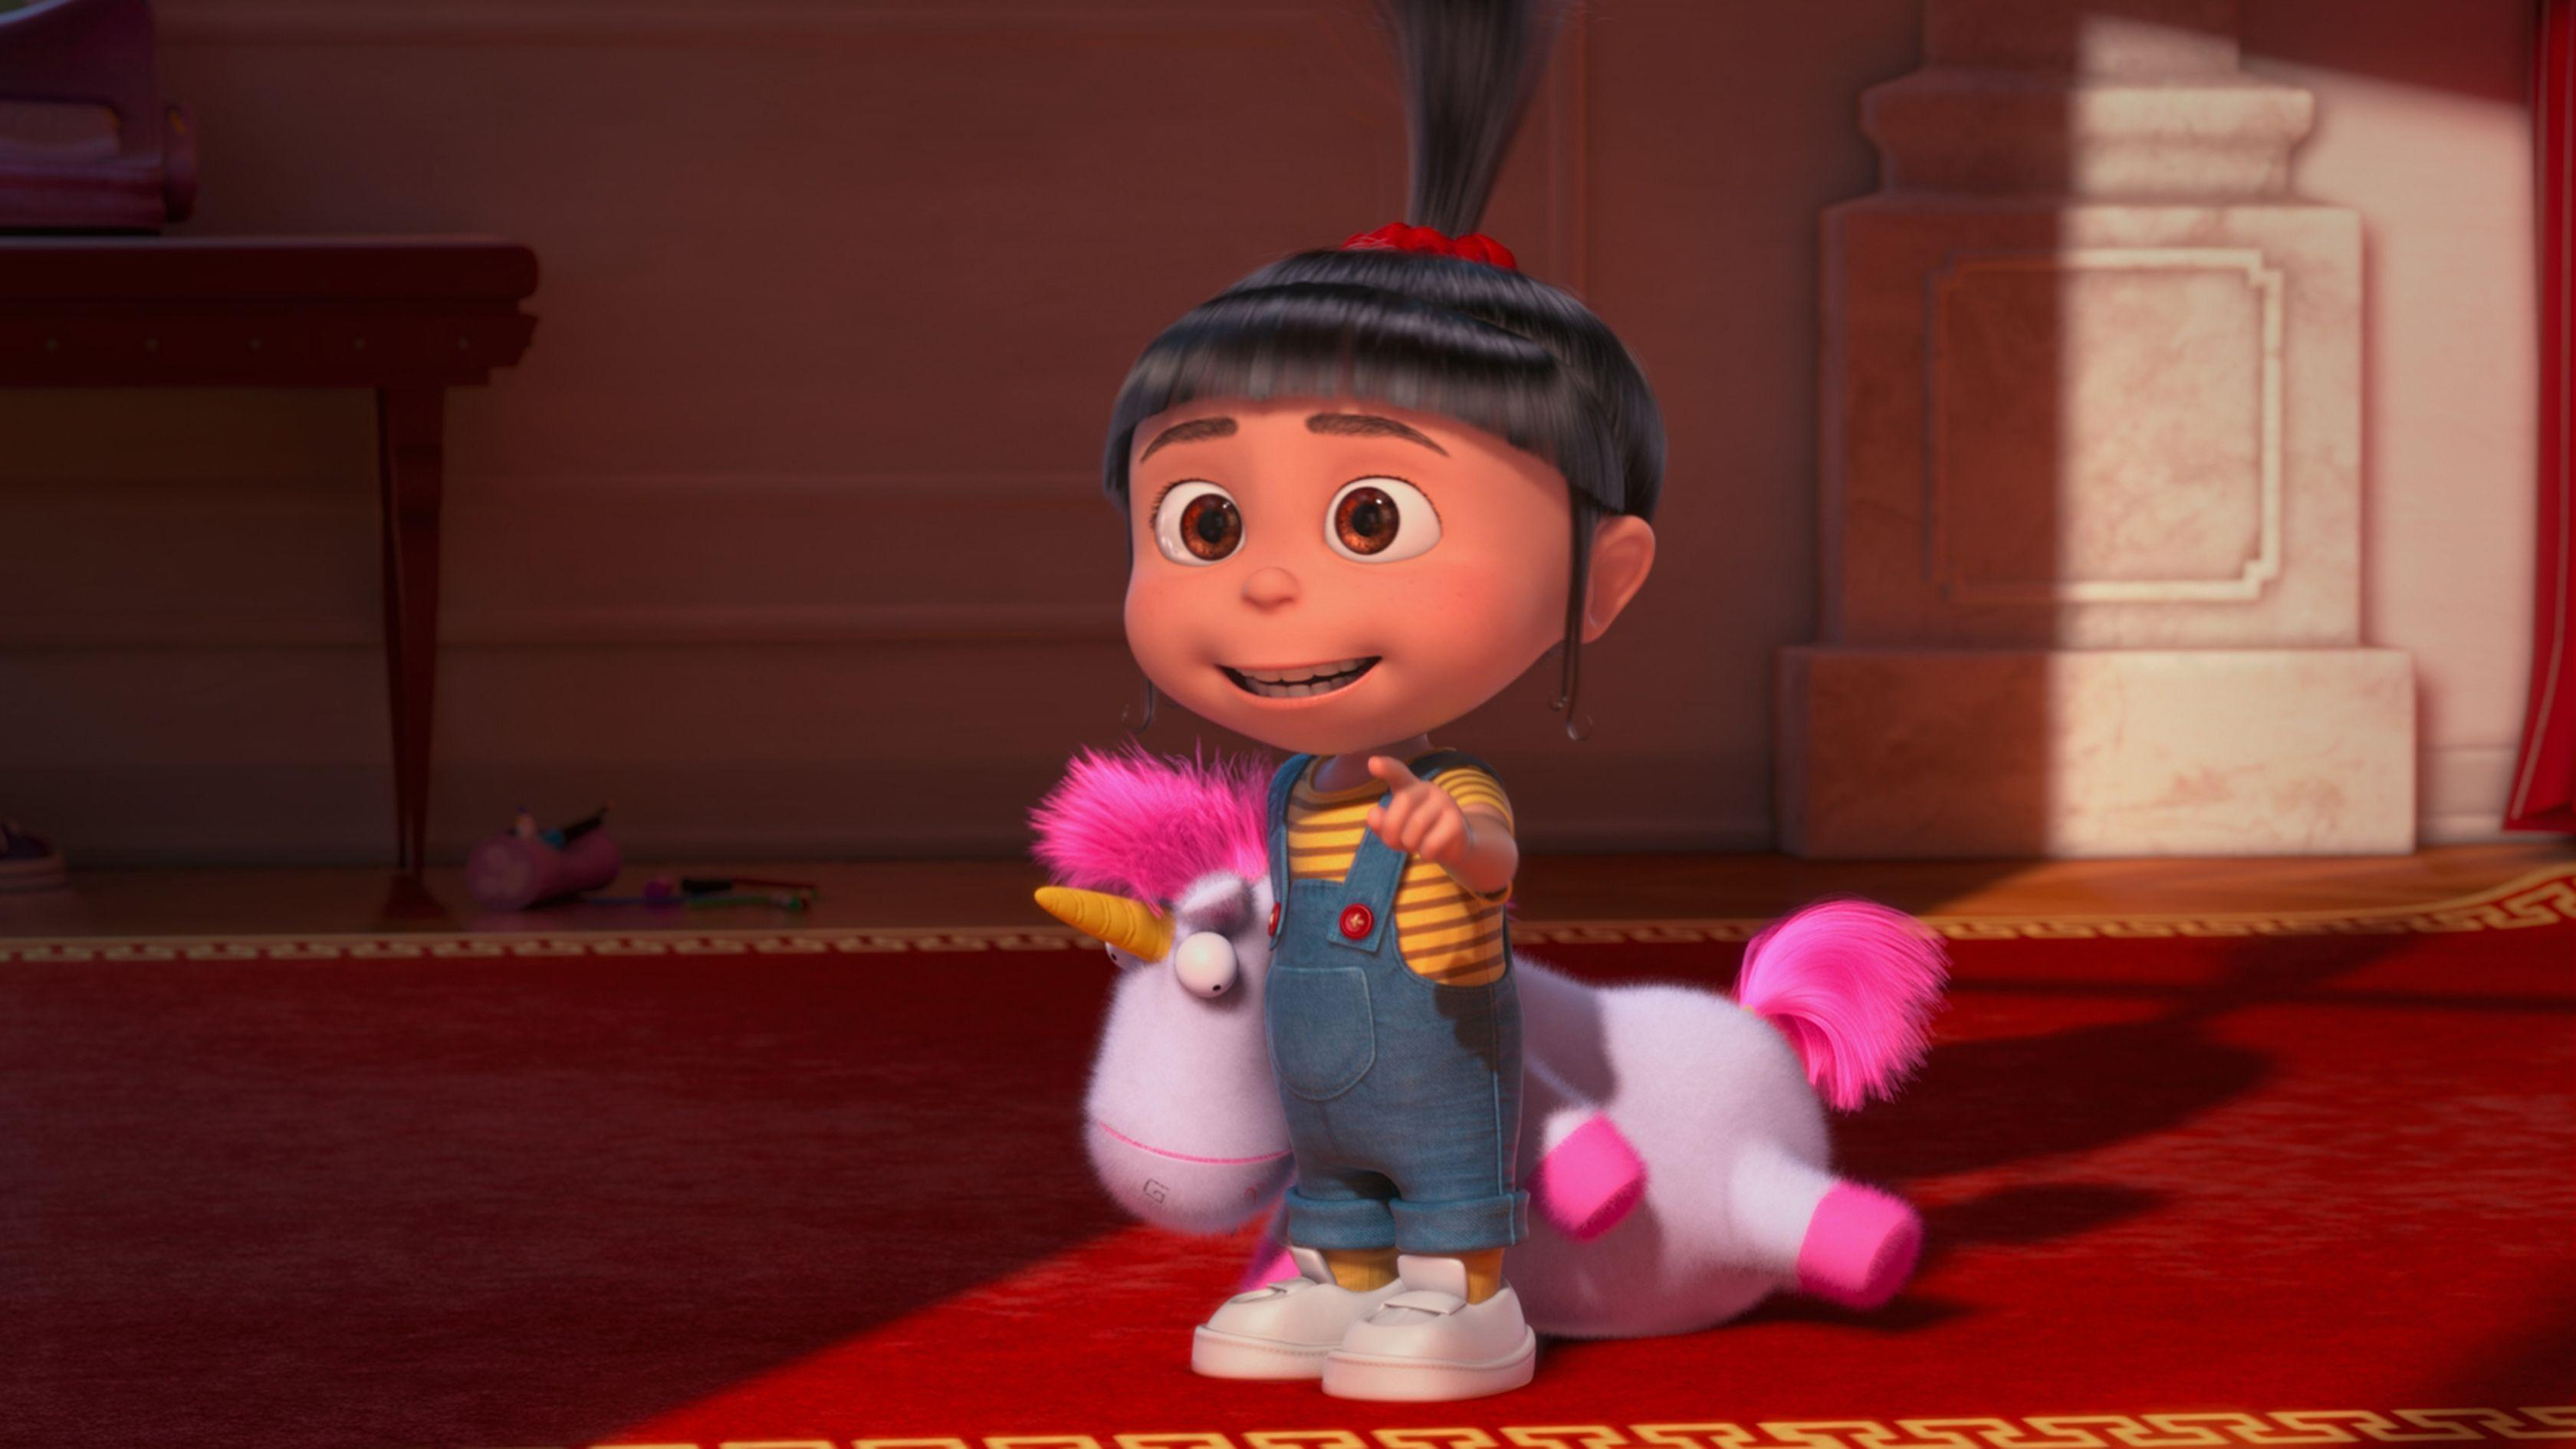 70 Agnes (Despicable Me) HD Wallpapers | Backgrounds - Wallpaper Abyss